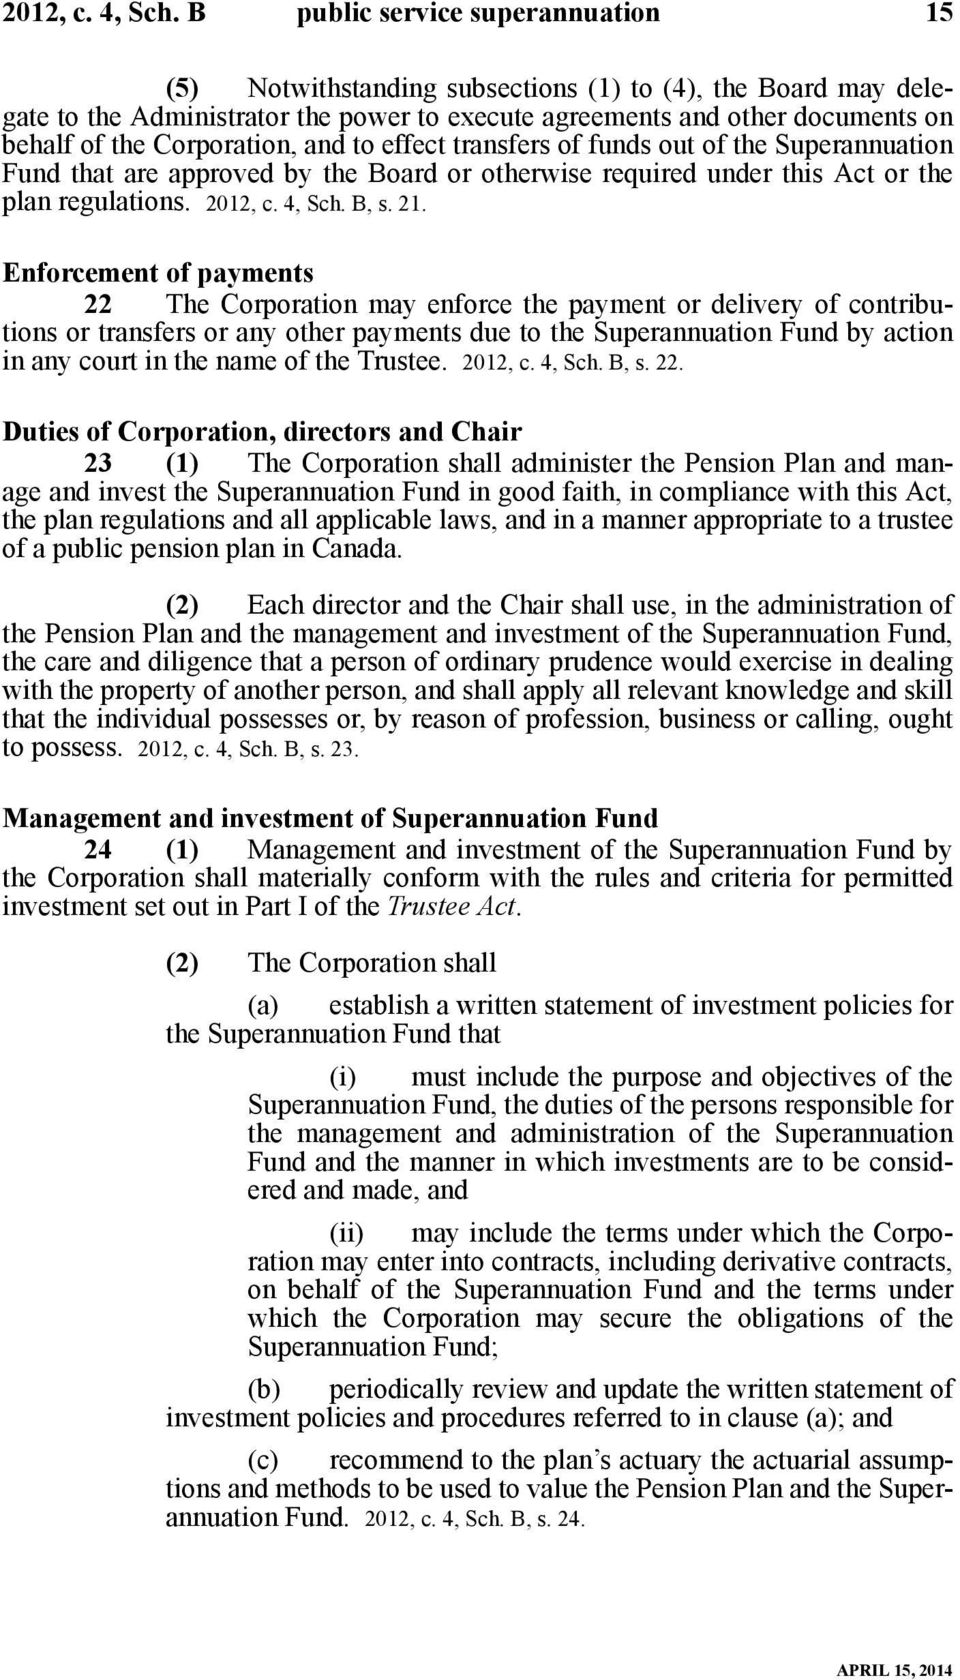 Corporation, and to effect transfers of funds out of the Superannuation Fund that are approved by the Board or otherwise required under this Act or the plan regulations.  B, s. 21.